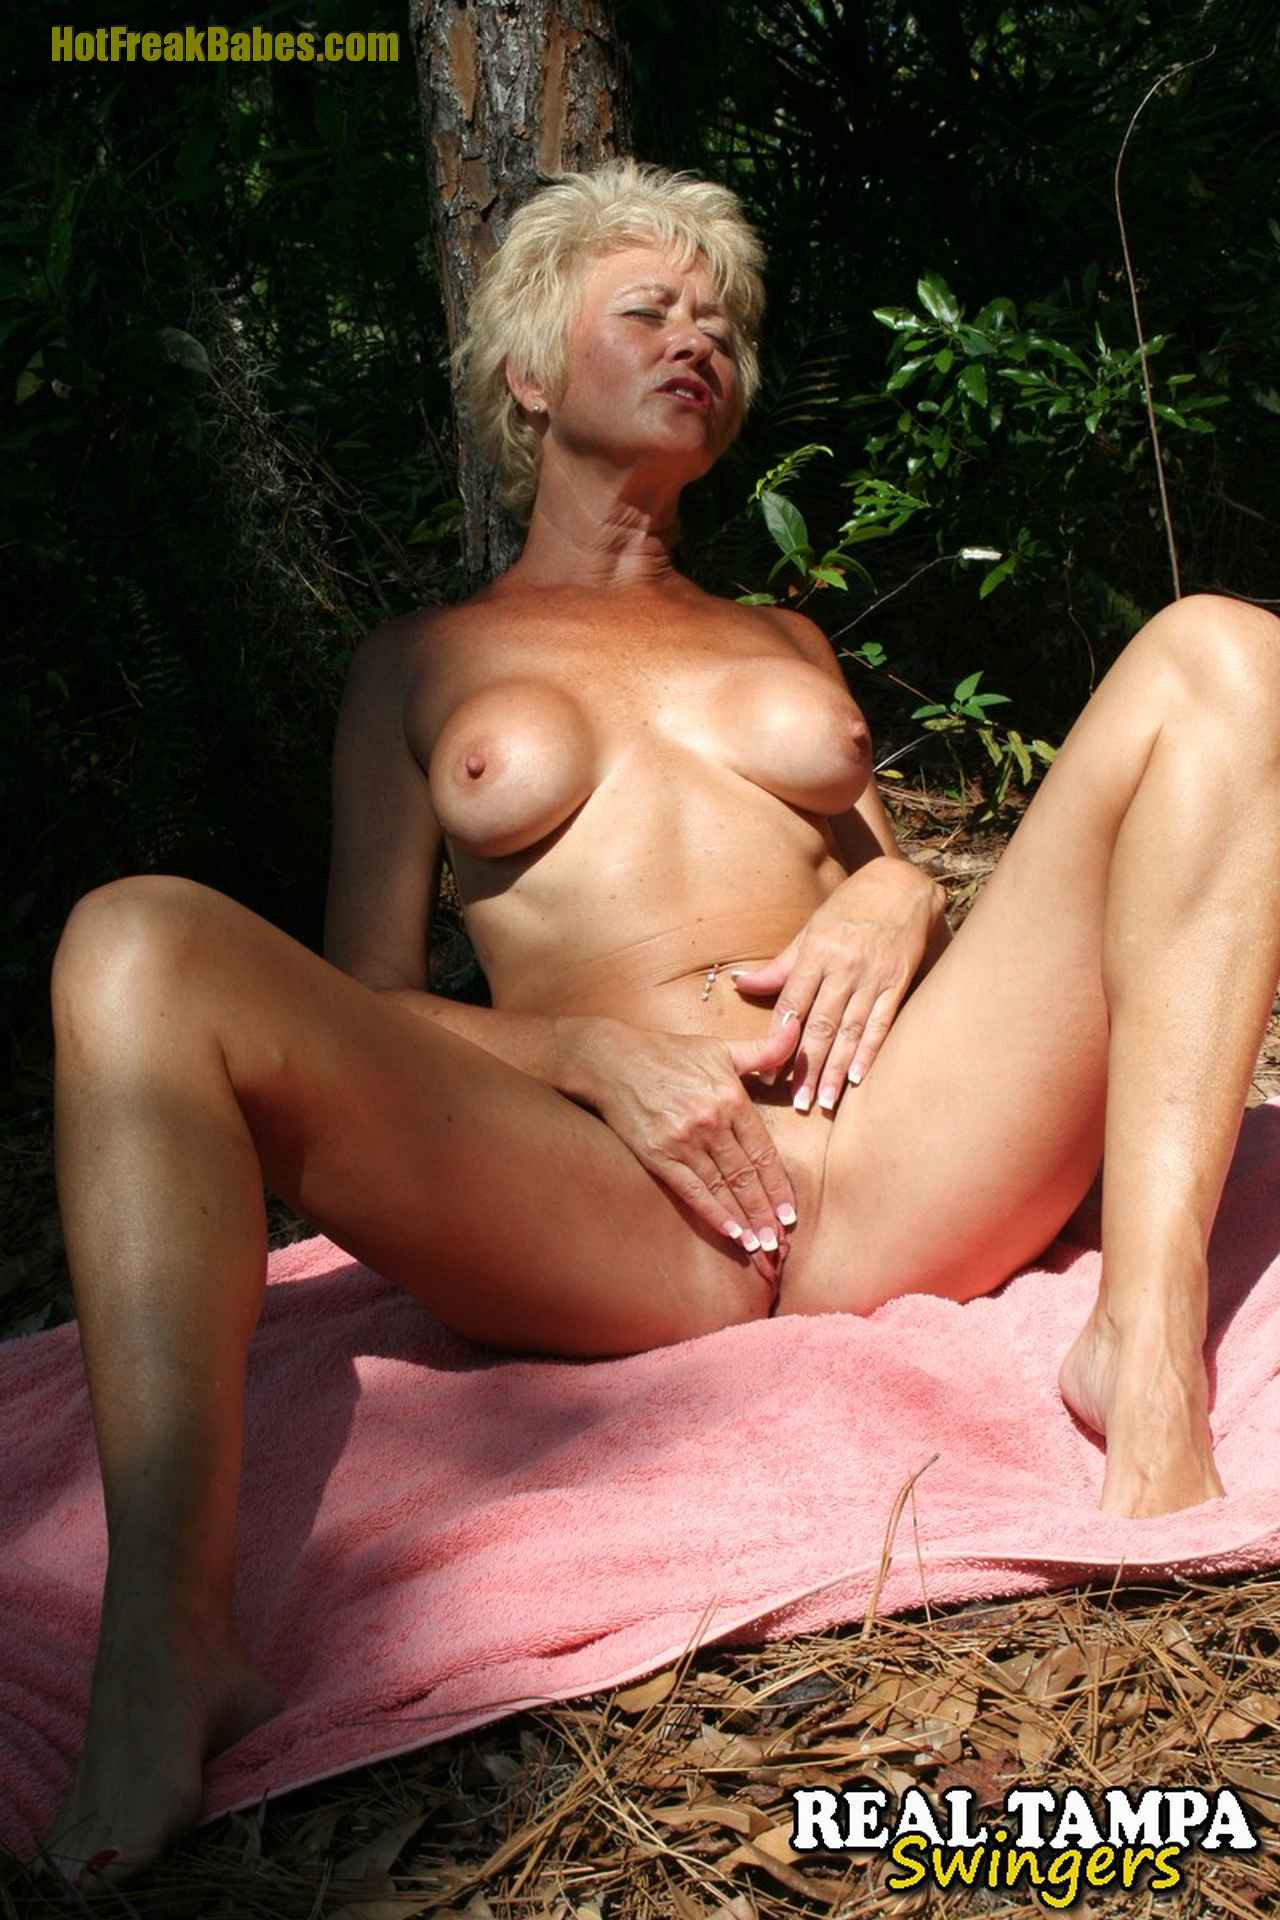 Tracy Lick, Real Tampa Swingers - Tracy Gets Naked in The Woods, mature nude, hot wife, hot wives, swinger, swingers, mature blonde, Real Tampa Swingers, hardcore movies, real amateur swingers, housewives fucking, sex parties